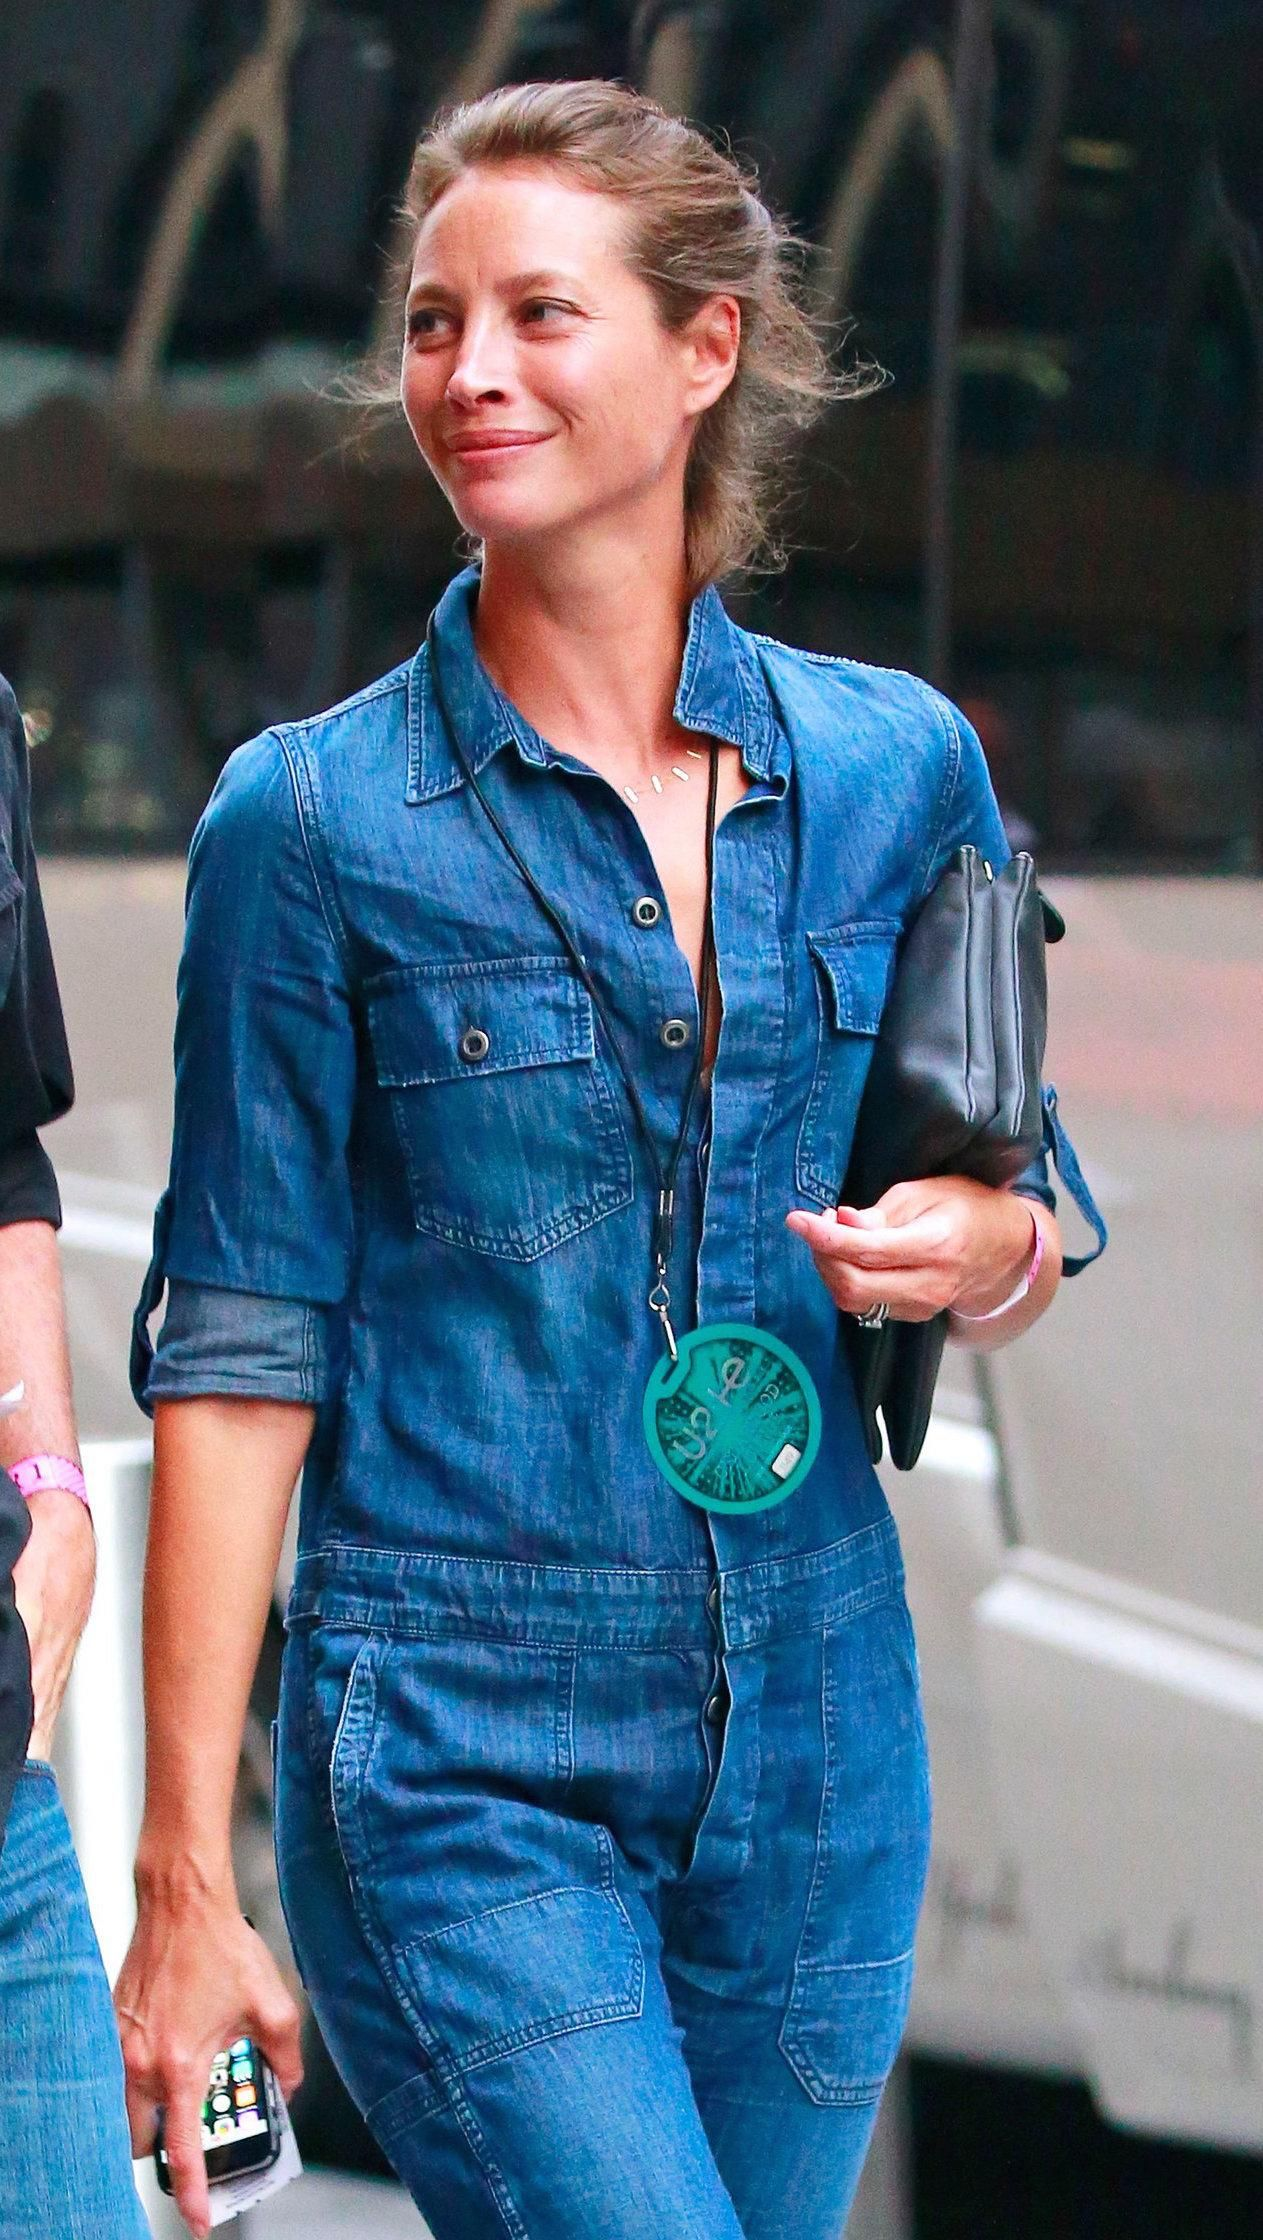 Christy Turlington Burns elevates overalls in Manhattan with a windswept bun and clean skin